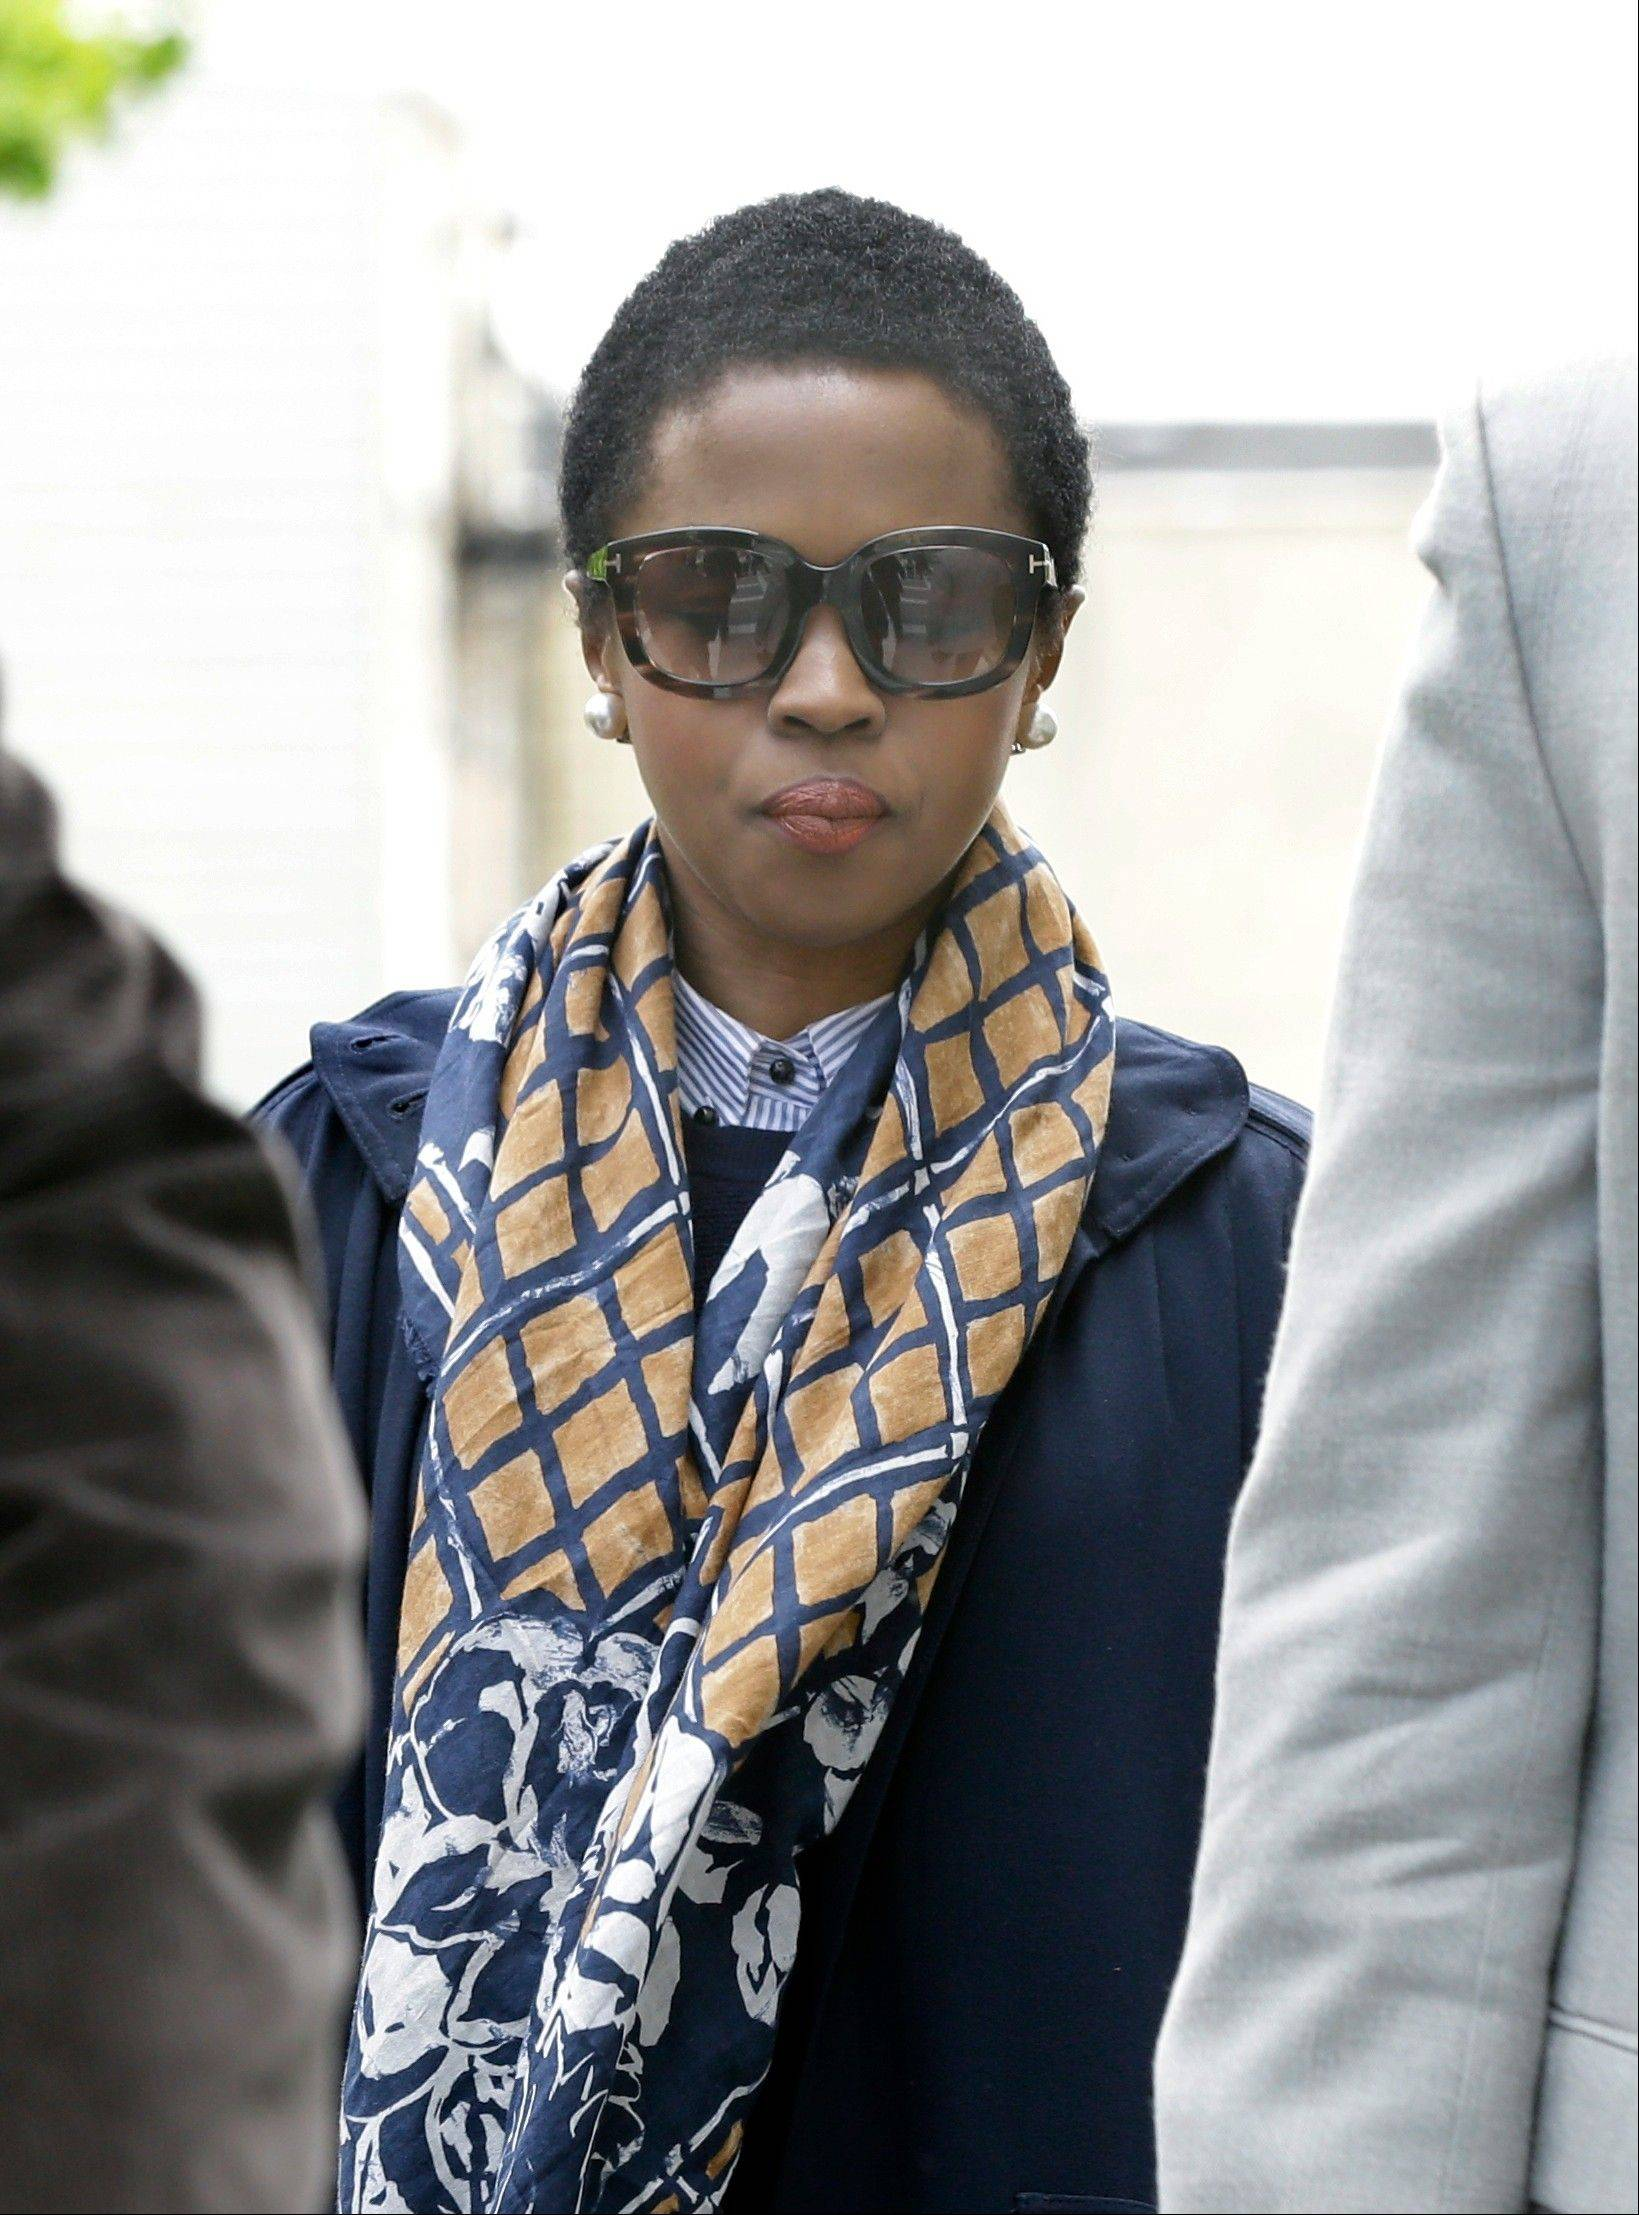 Eight-time Grammy winning singer Lauryn Hill, center, walks to federal court in Newark, N.J., Monday, May 6, for sentencing in her tax evasion case. Hill pleaded guilty last year to not paying federal taxes on $1.8 million earned from 2005 to 2007. She faces up to a year in prison on each of three counts.